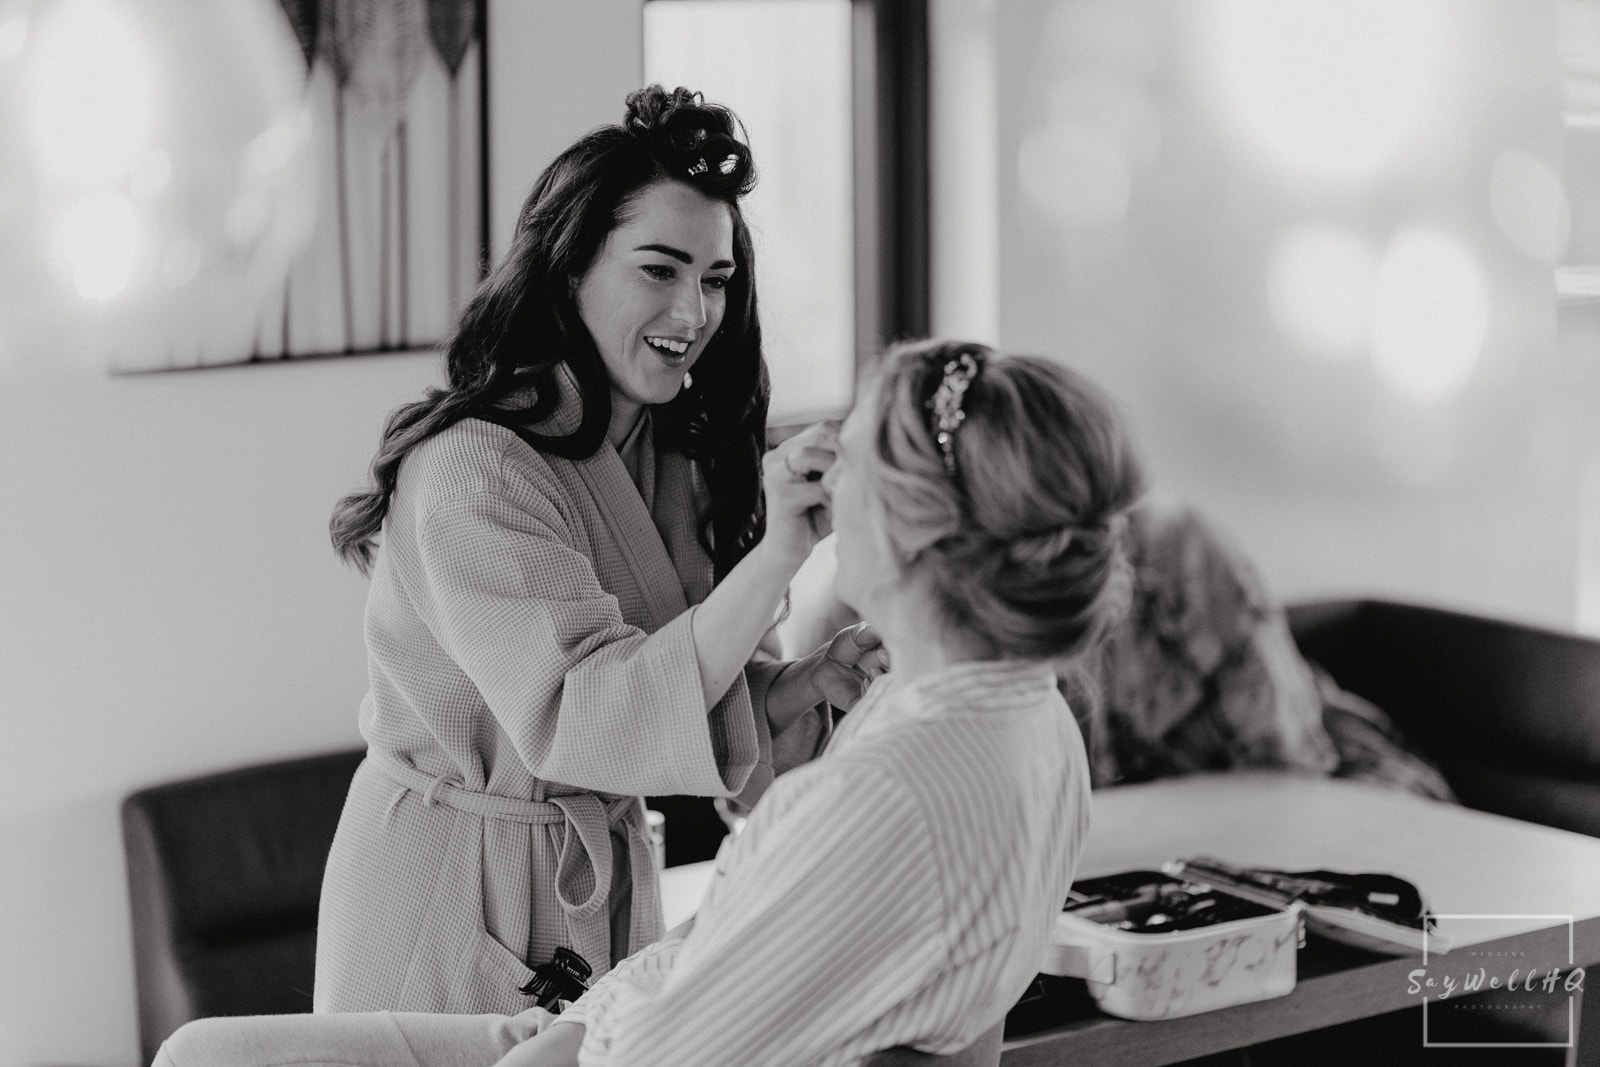 Goosedale Wedding Photography + Goosedale Wedding Photographer + bride having her make-up done on the morning of her wedding at Goosedale